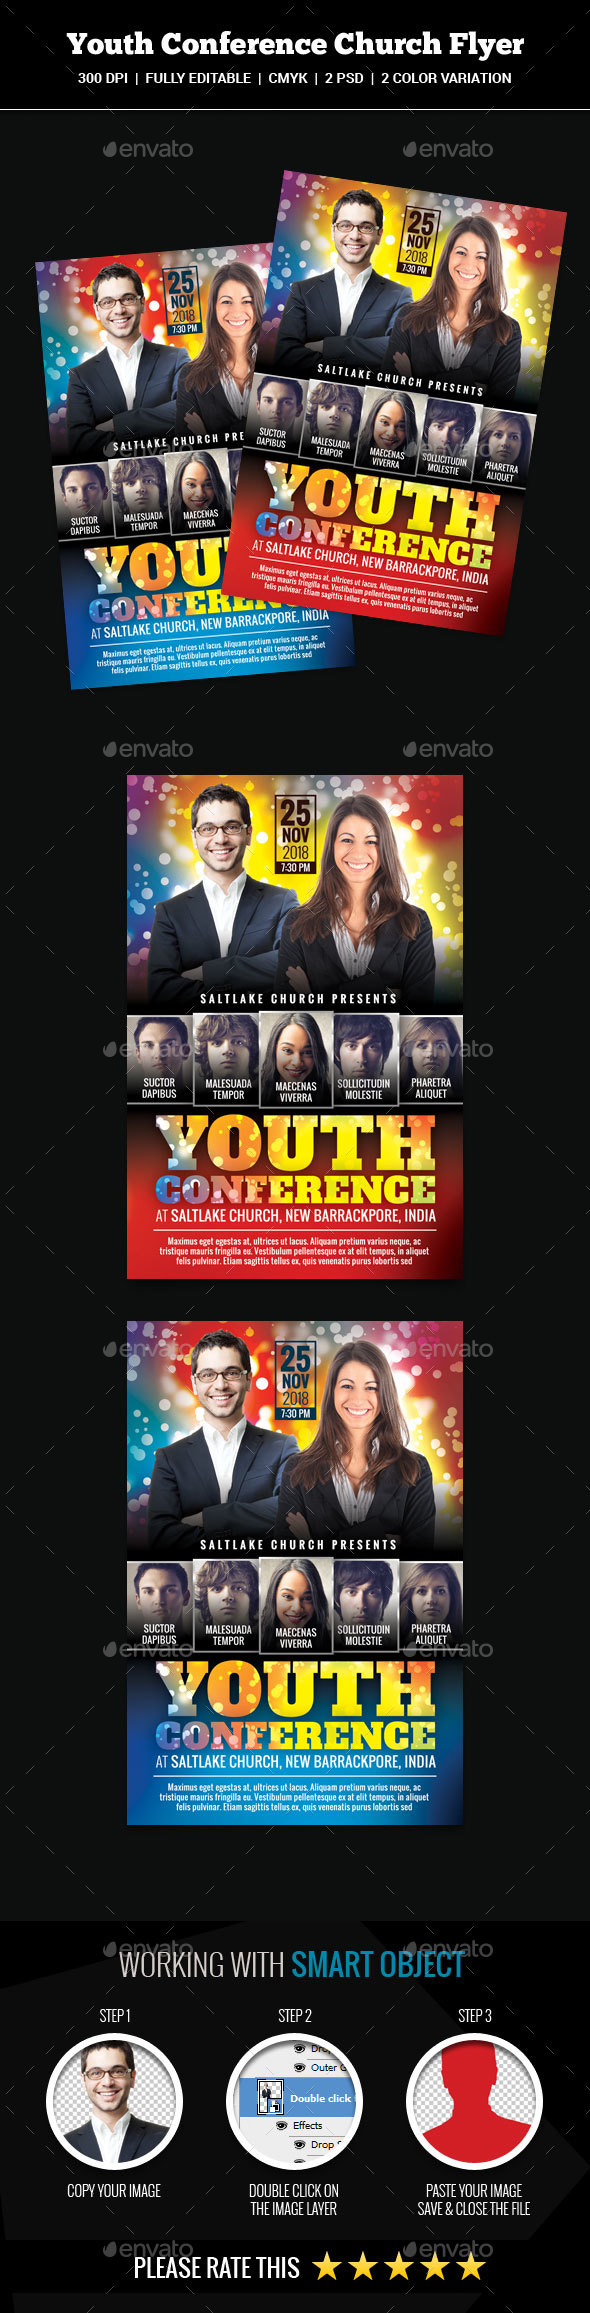 Youth Conference Church Flyer - Church Flyers